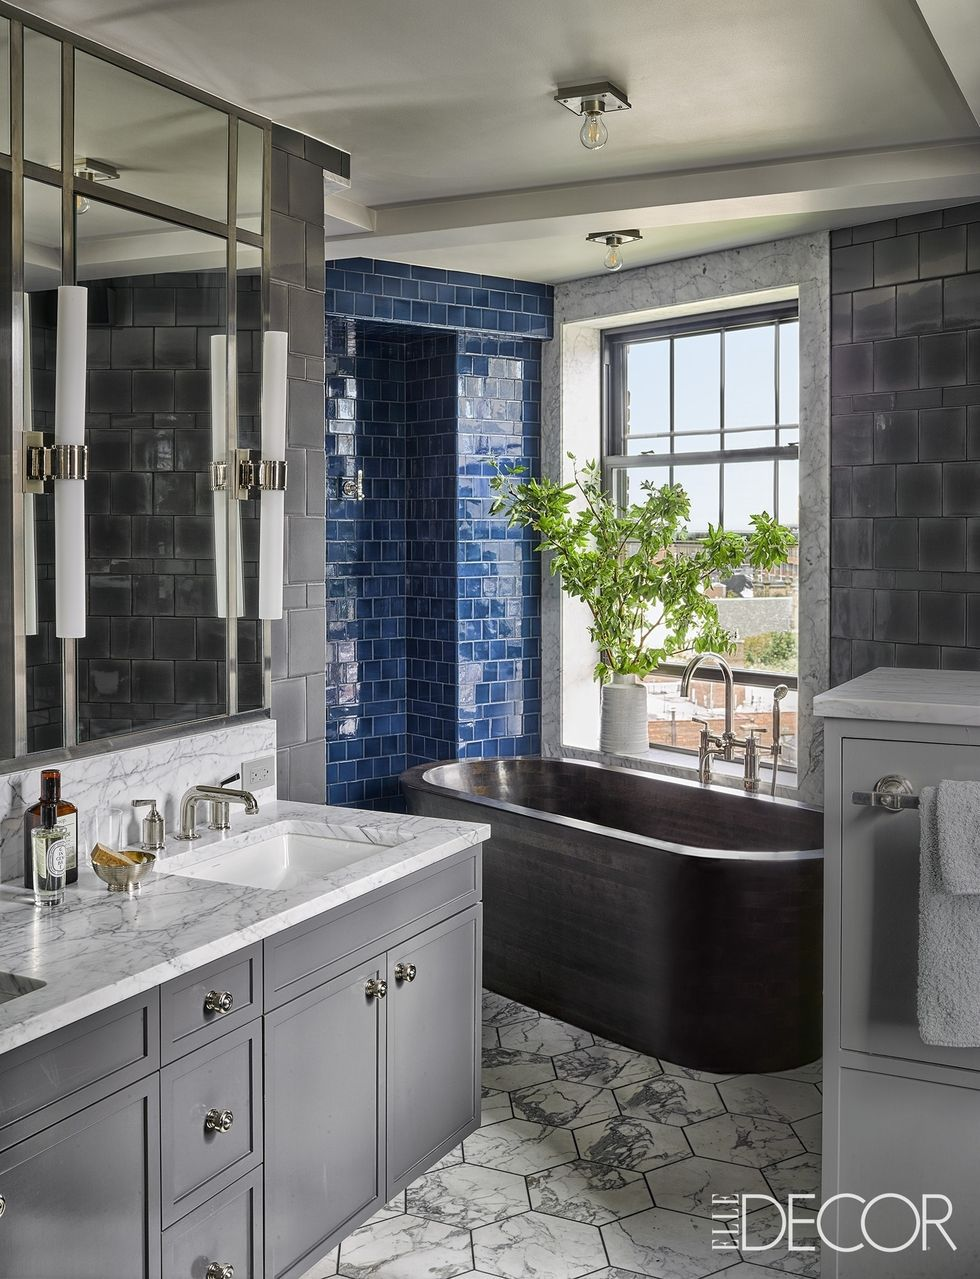 Be Inspired By 80 Beautiful Bathrooms For All Sizes And ... on Beautiful Bathroom Ideas  id=94742